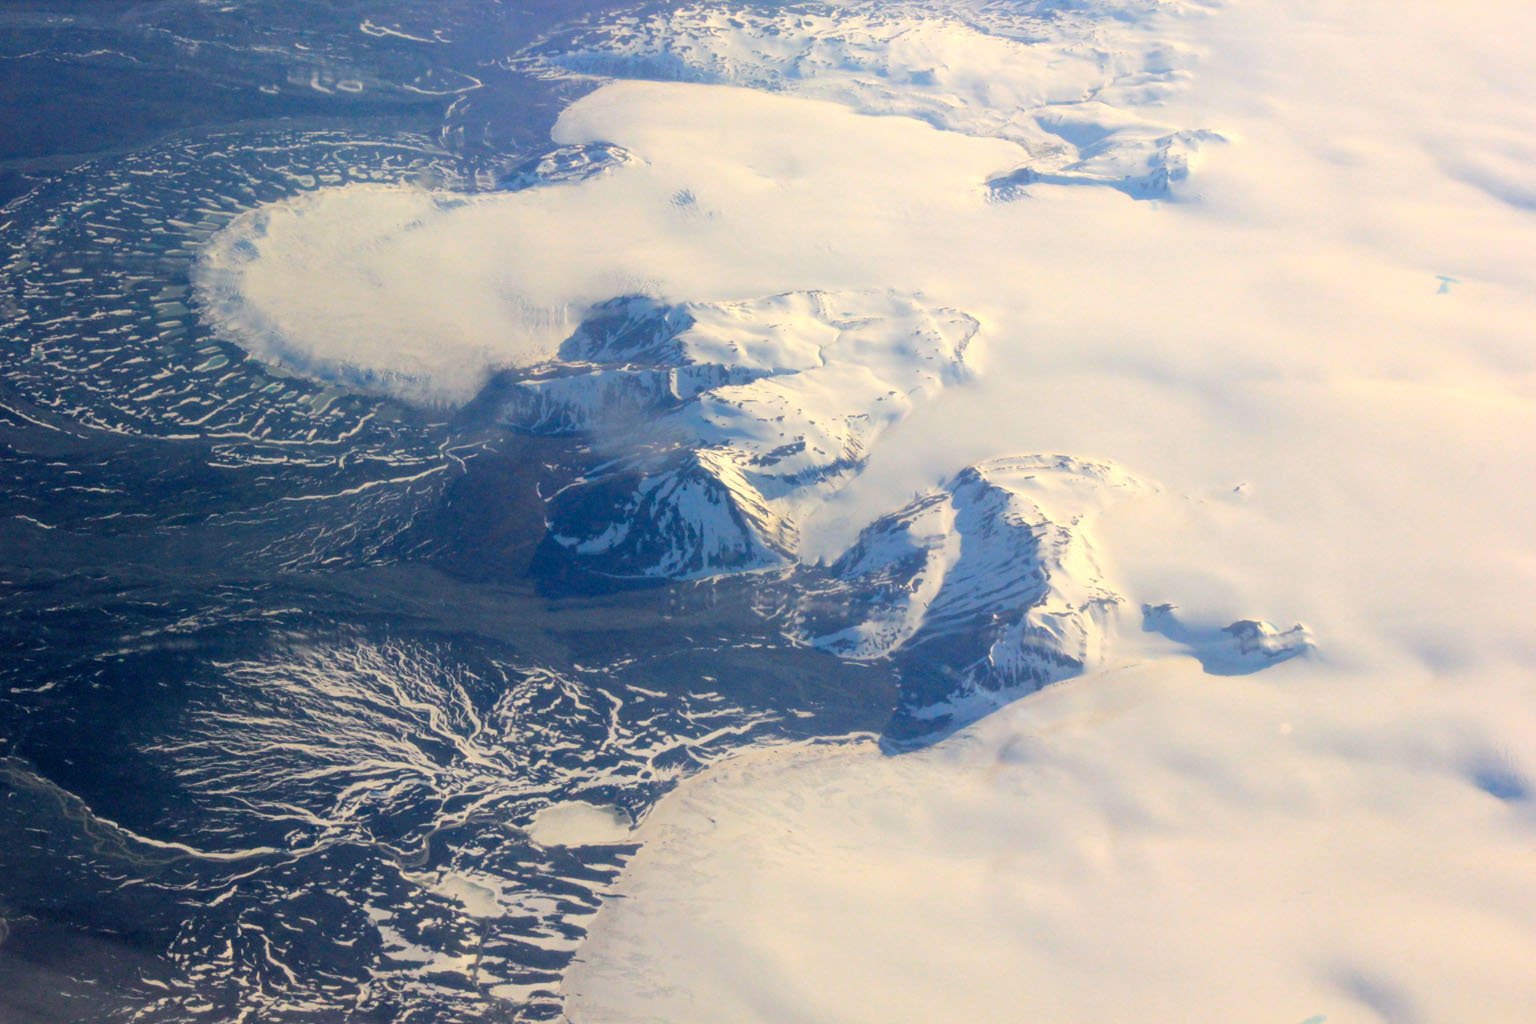 This image shows a small part of the Hofsjökull ice cap in Iceland, which encompasses several glaciers. The fan at upper left is part of a glacier called Mûlajökul.